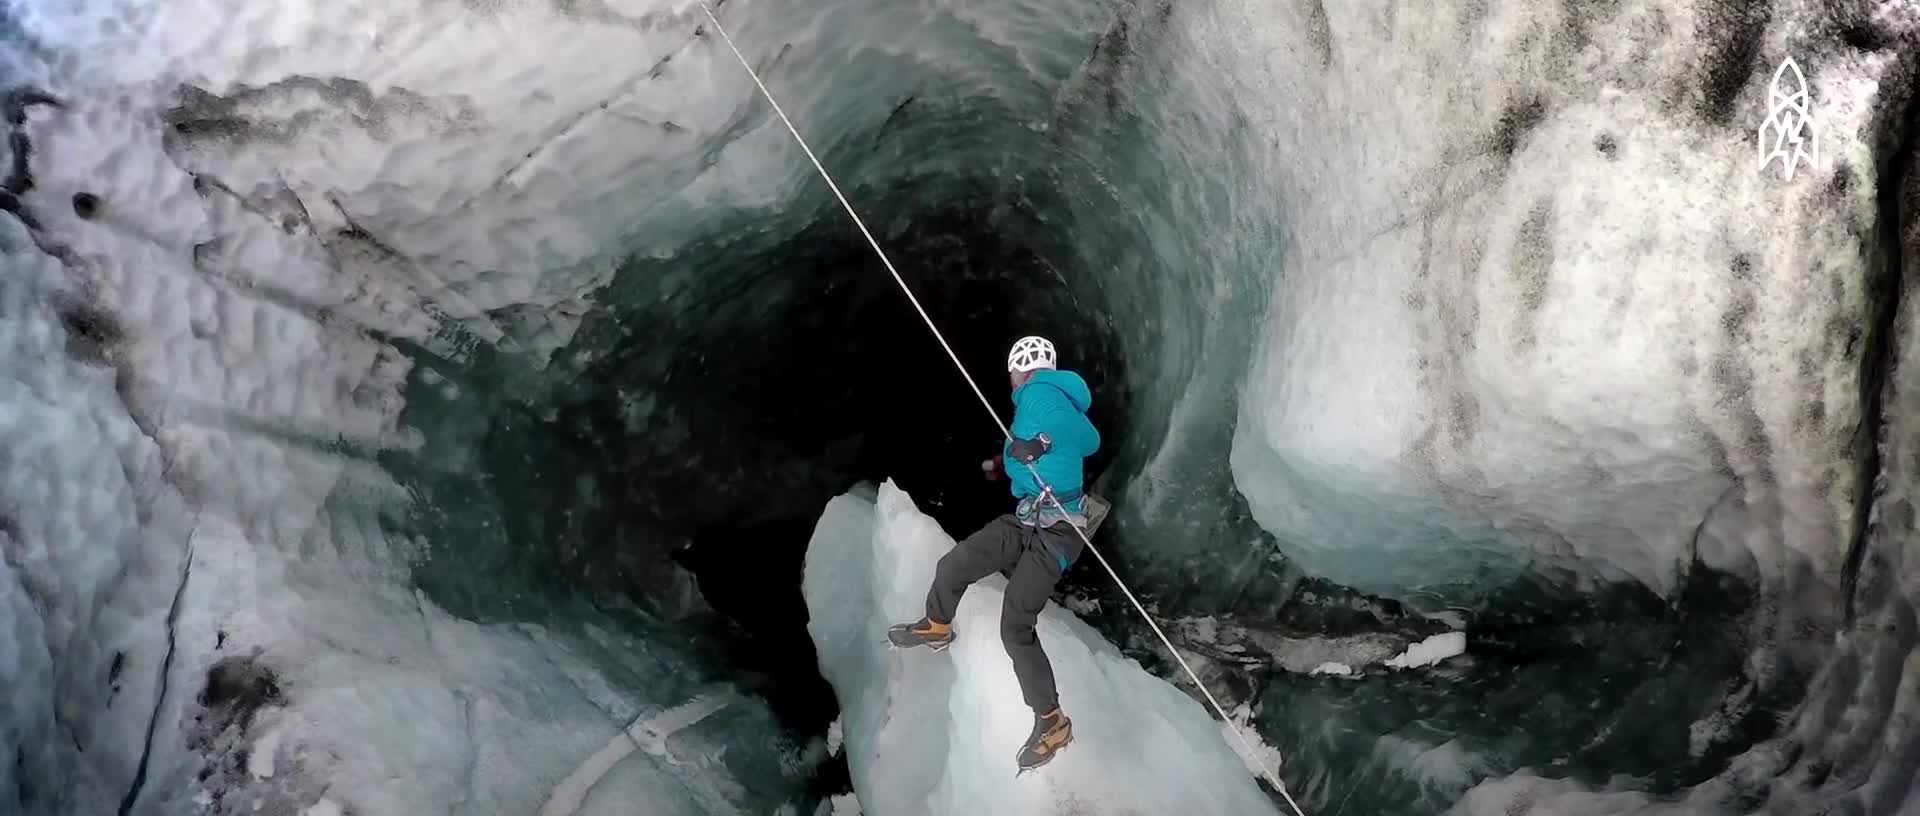 Scaling the Toughest Ice Climb on the Planet